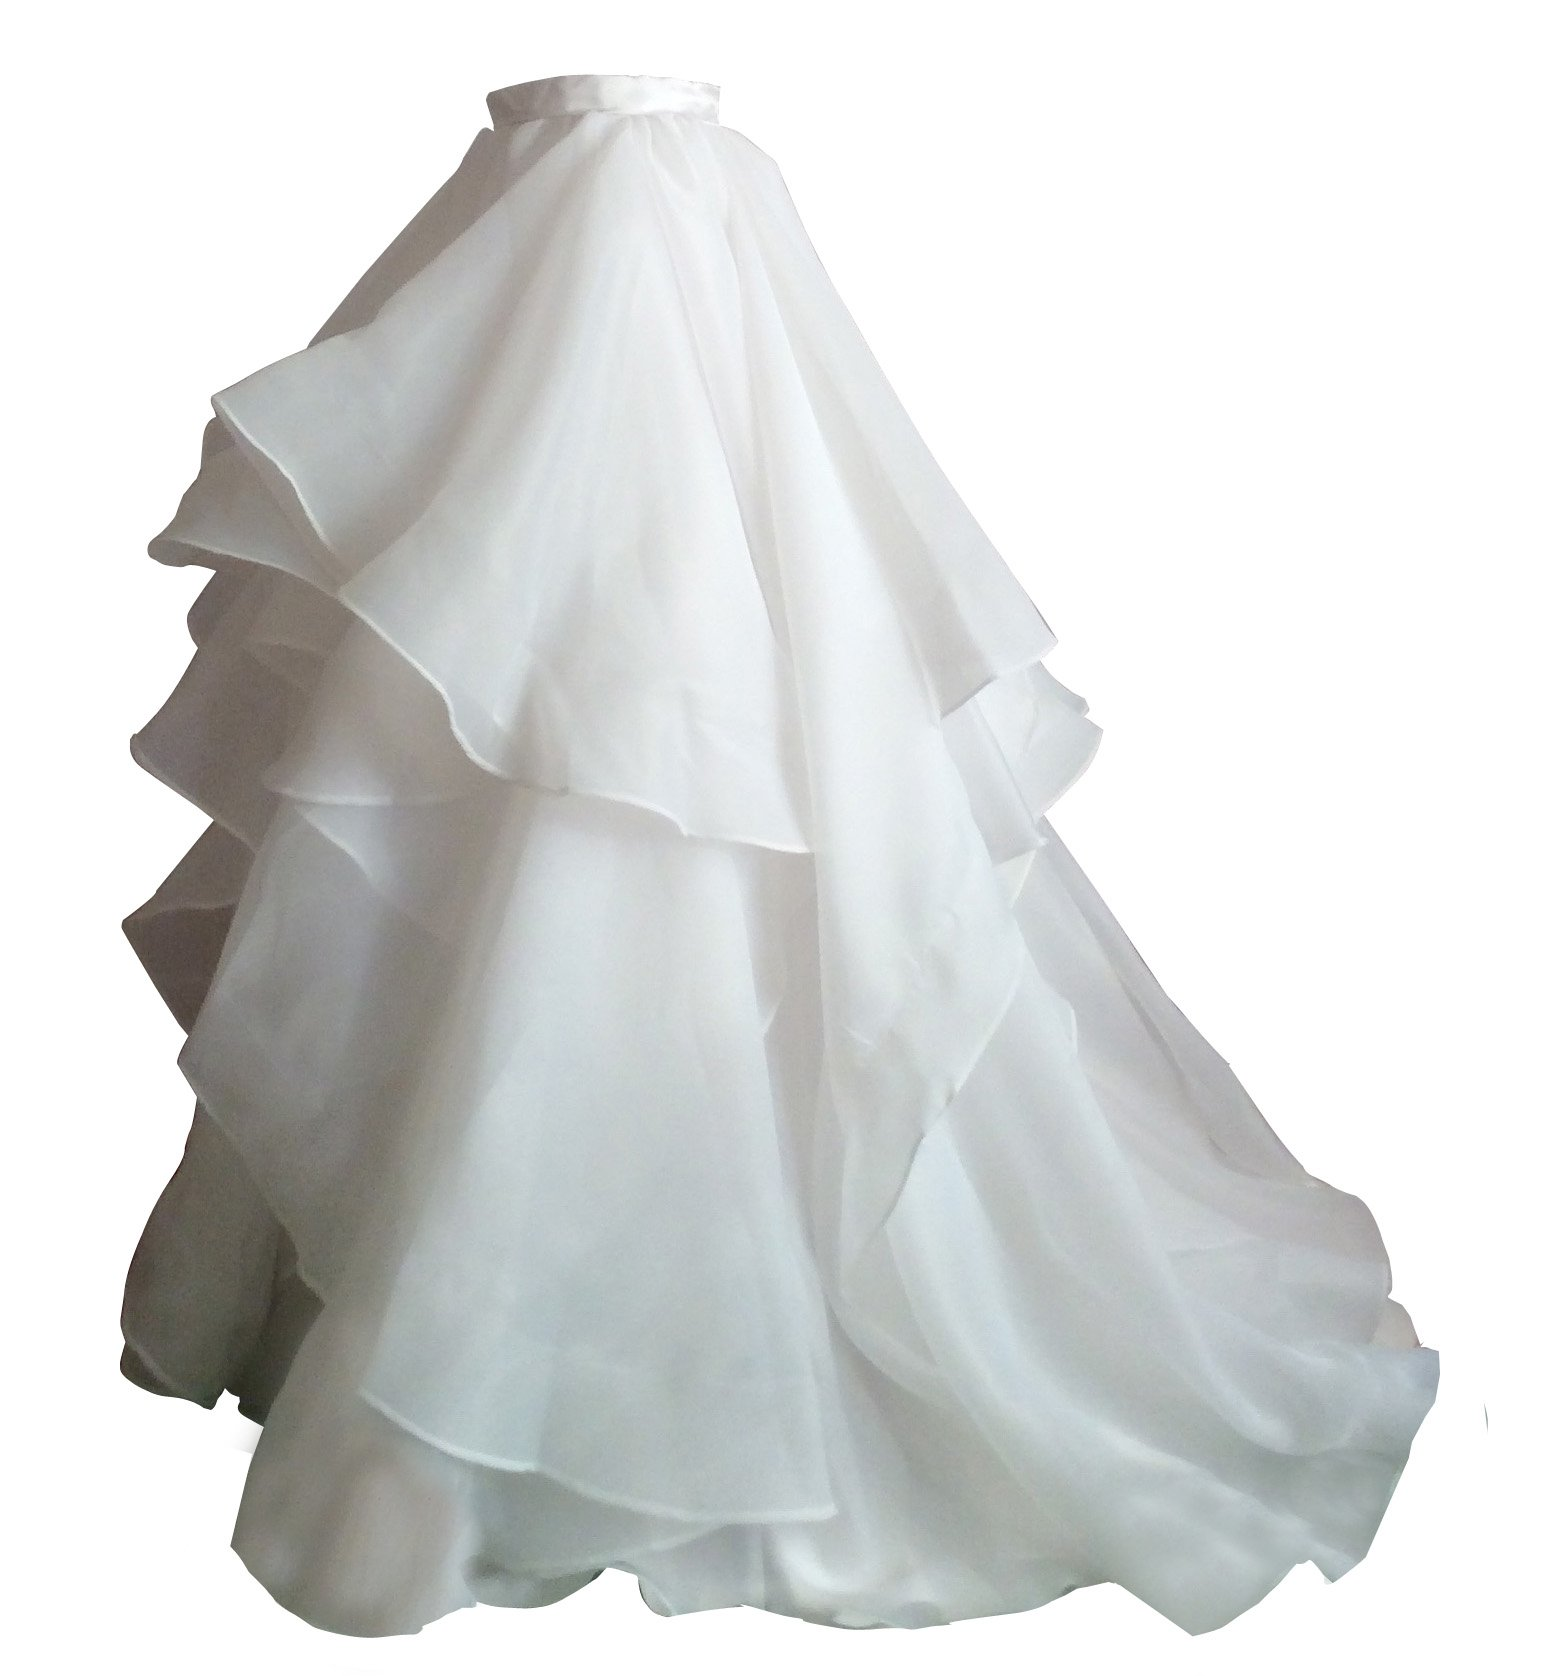 Flowerry Women Organza Skirt Bridesmaid Formal Skirt Prom Wedding Party Bridal Skirt XL white by flowerry